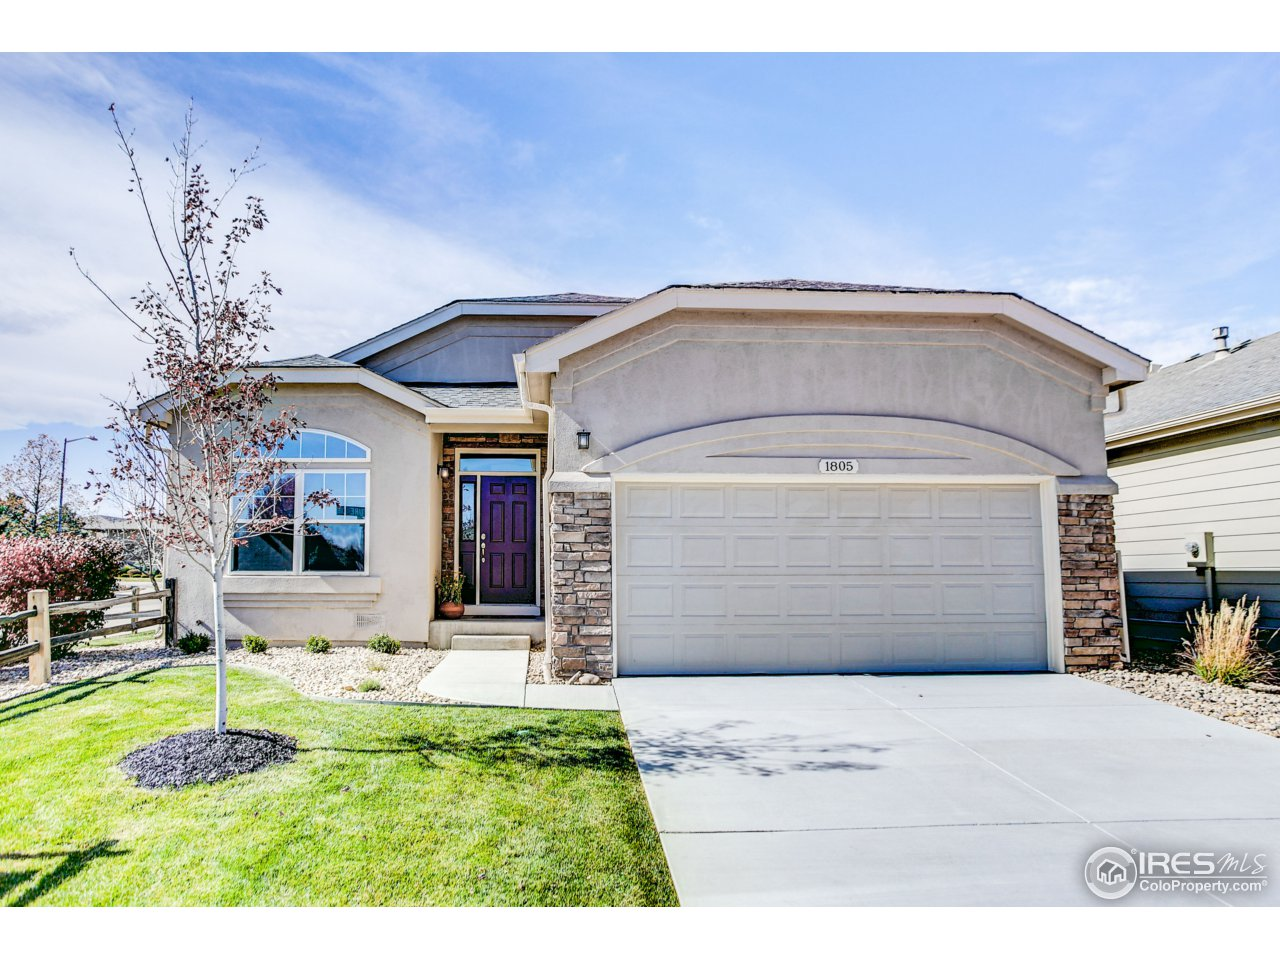 1805 Signature Cir, Longmont CO 80504